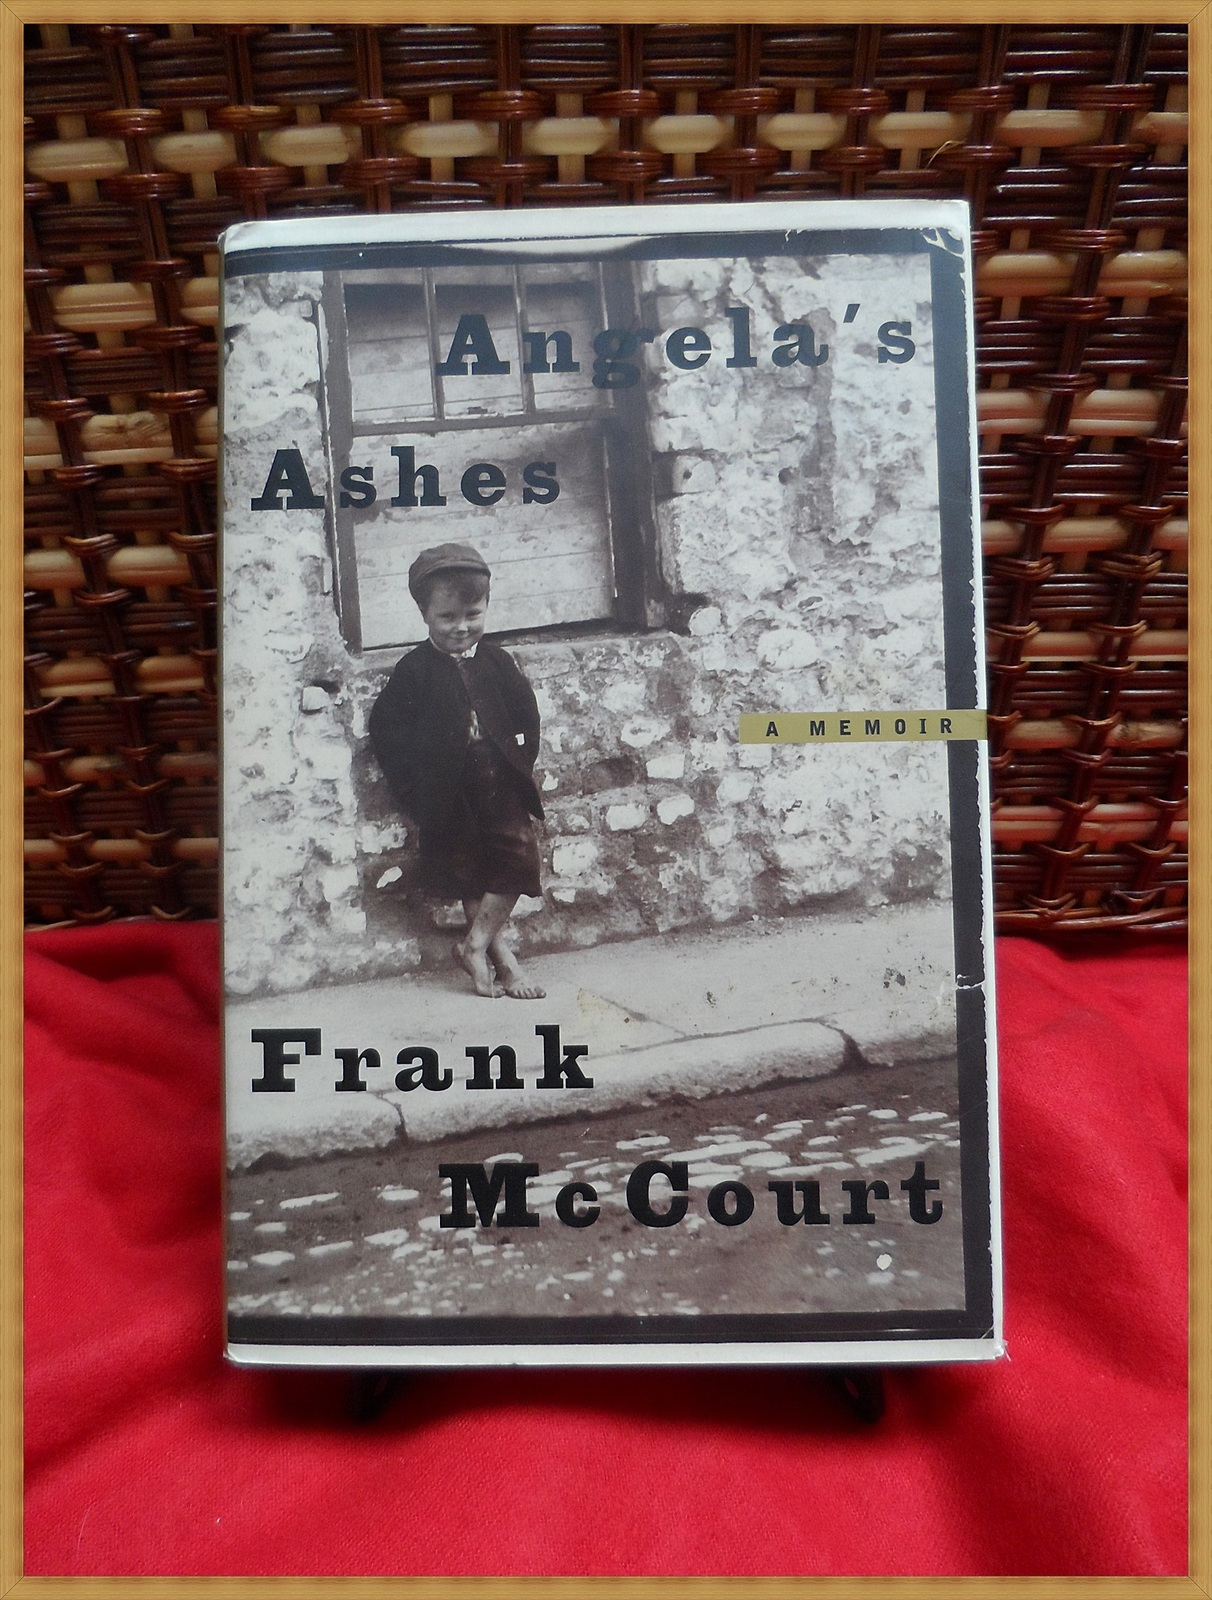 angela s ashes Angela's ashes frank mccourt mccourt's style of writing symbolism themes similar pieces/connections tone and mood historical time period author's style of writing.